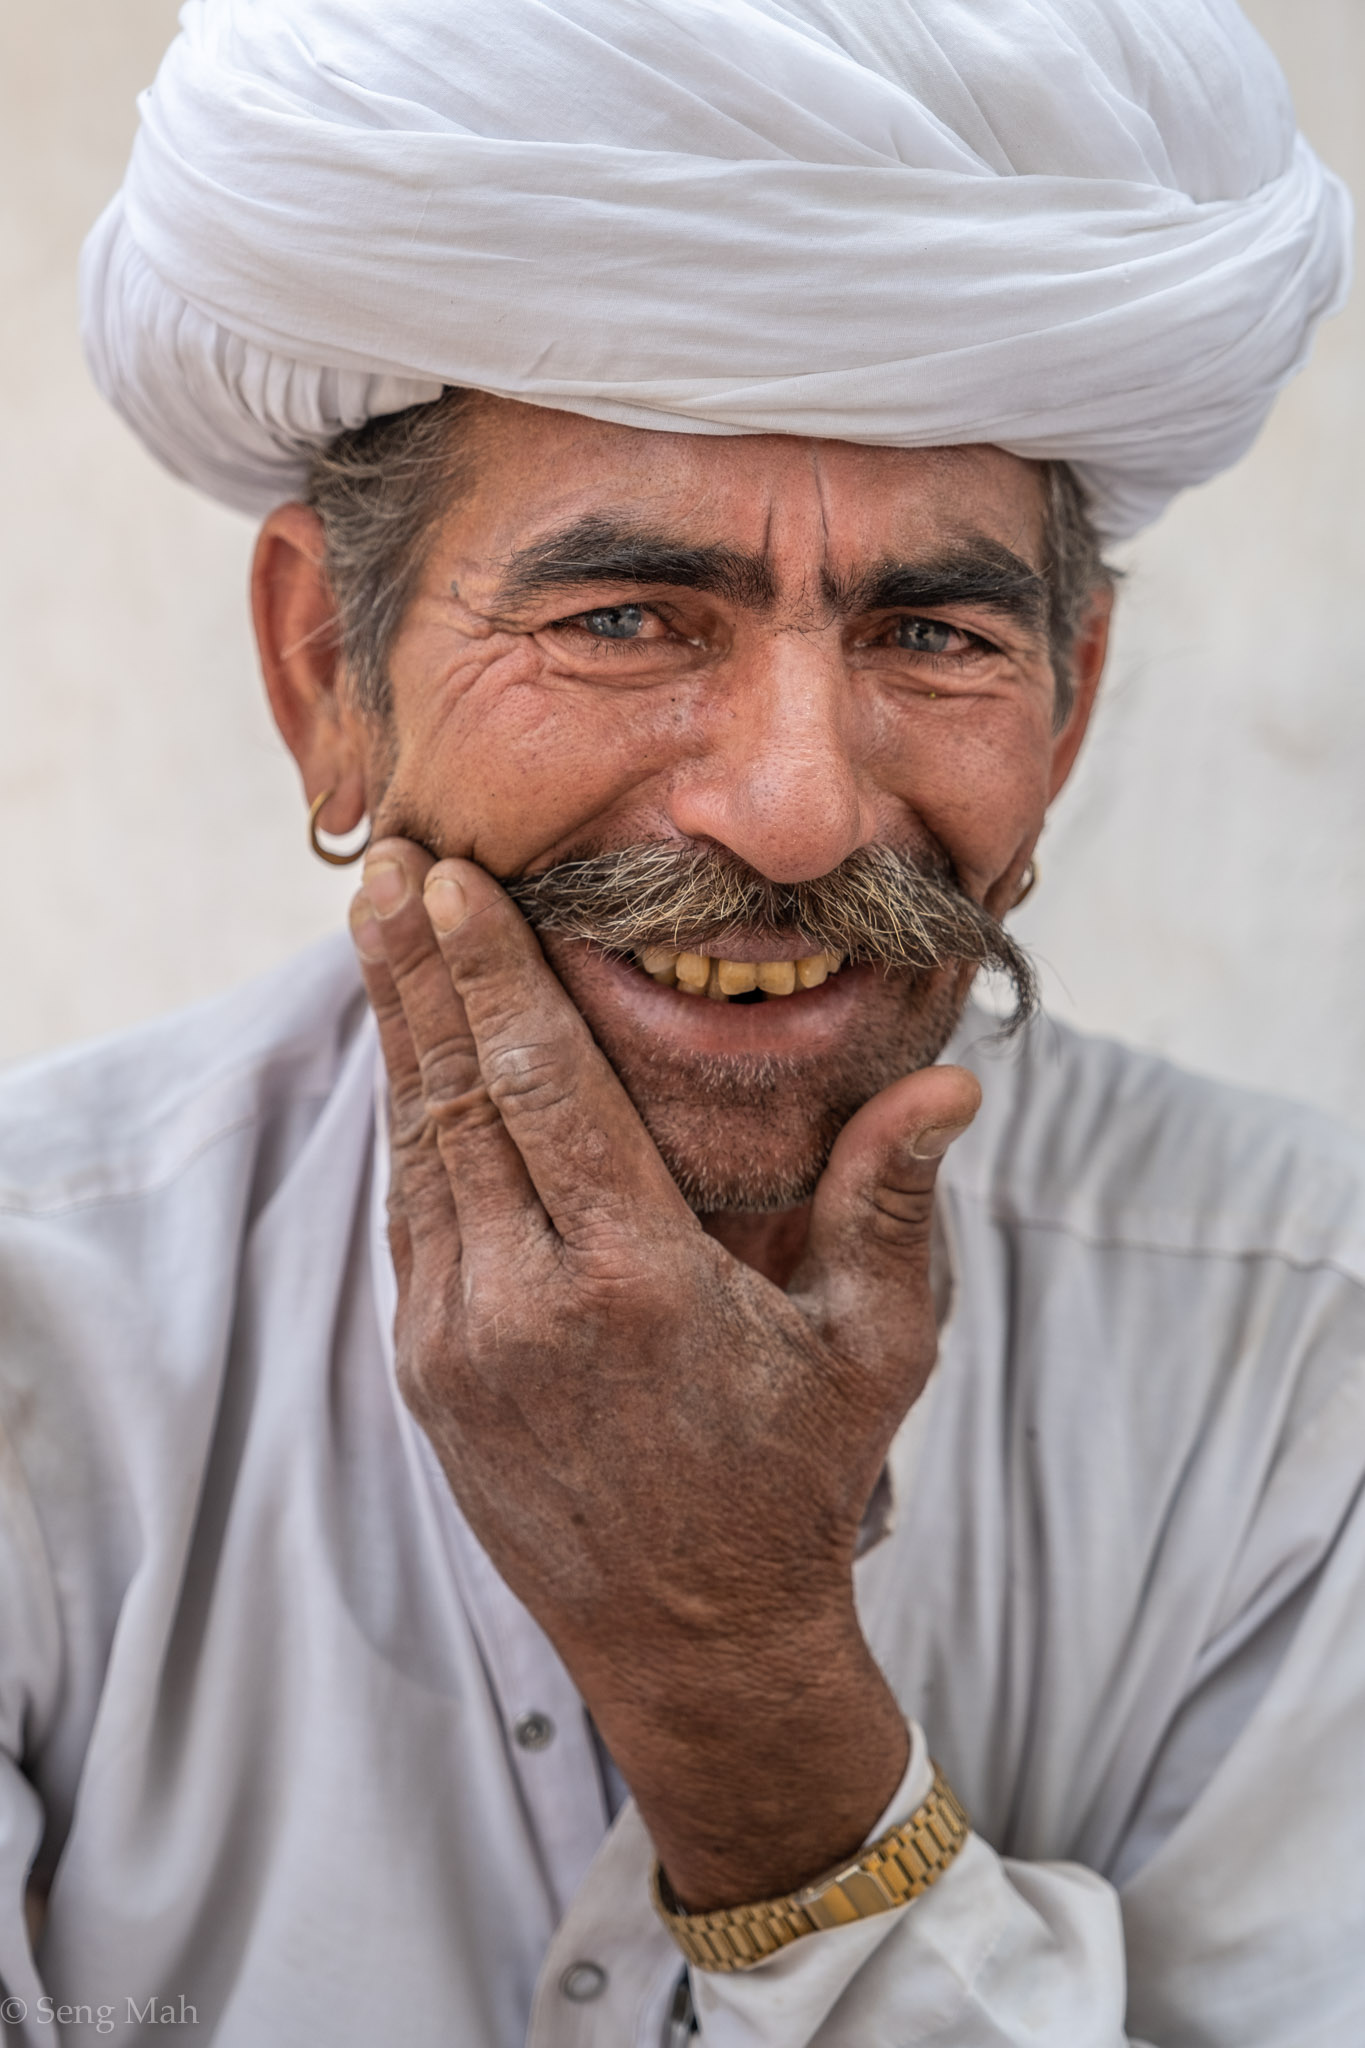 Portrait of a Rajasthani man in traditional white Bishnoi turban and kurta